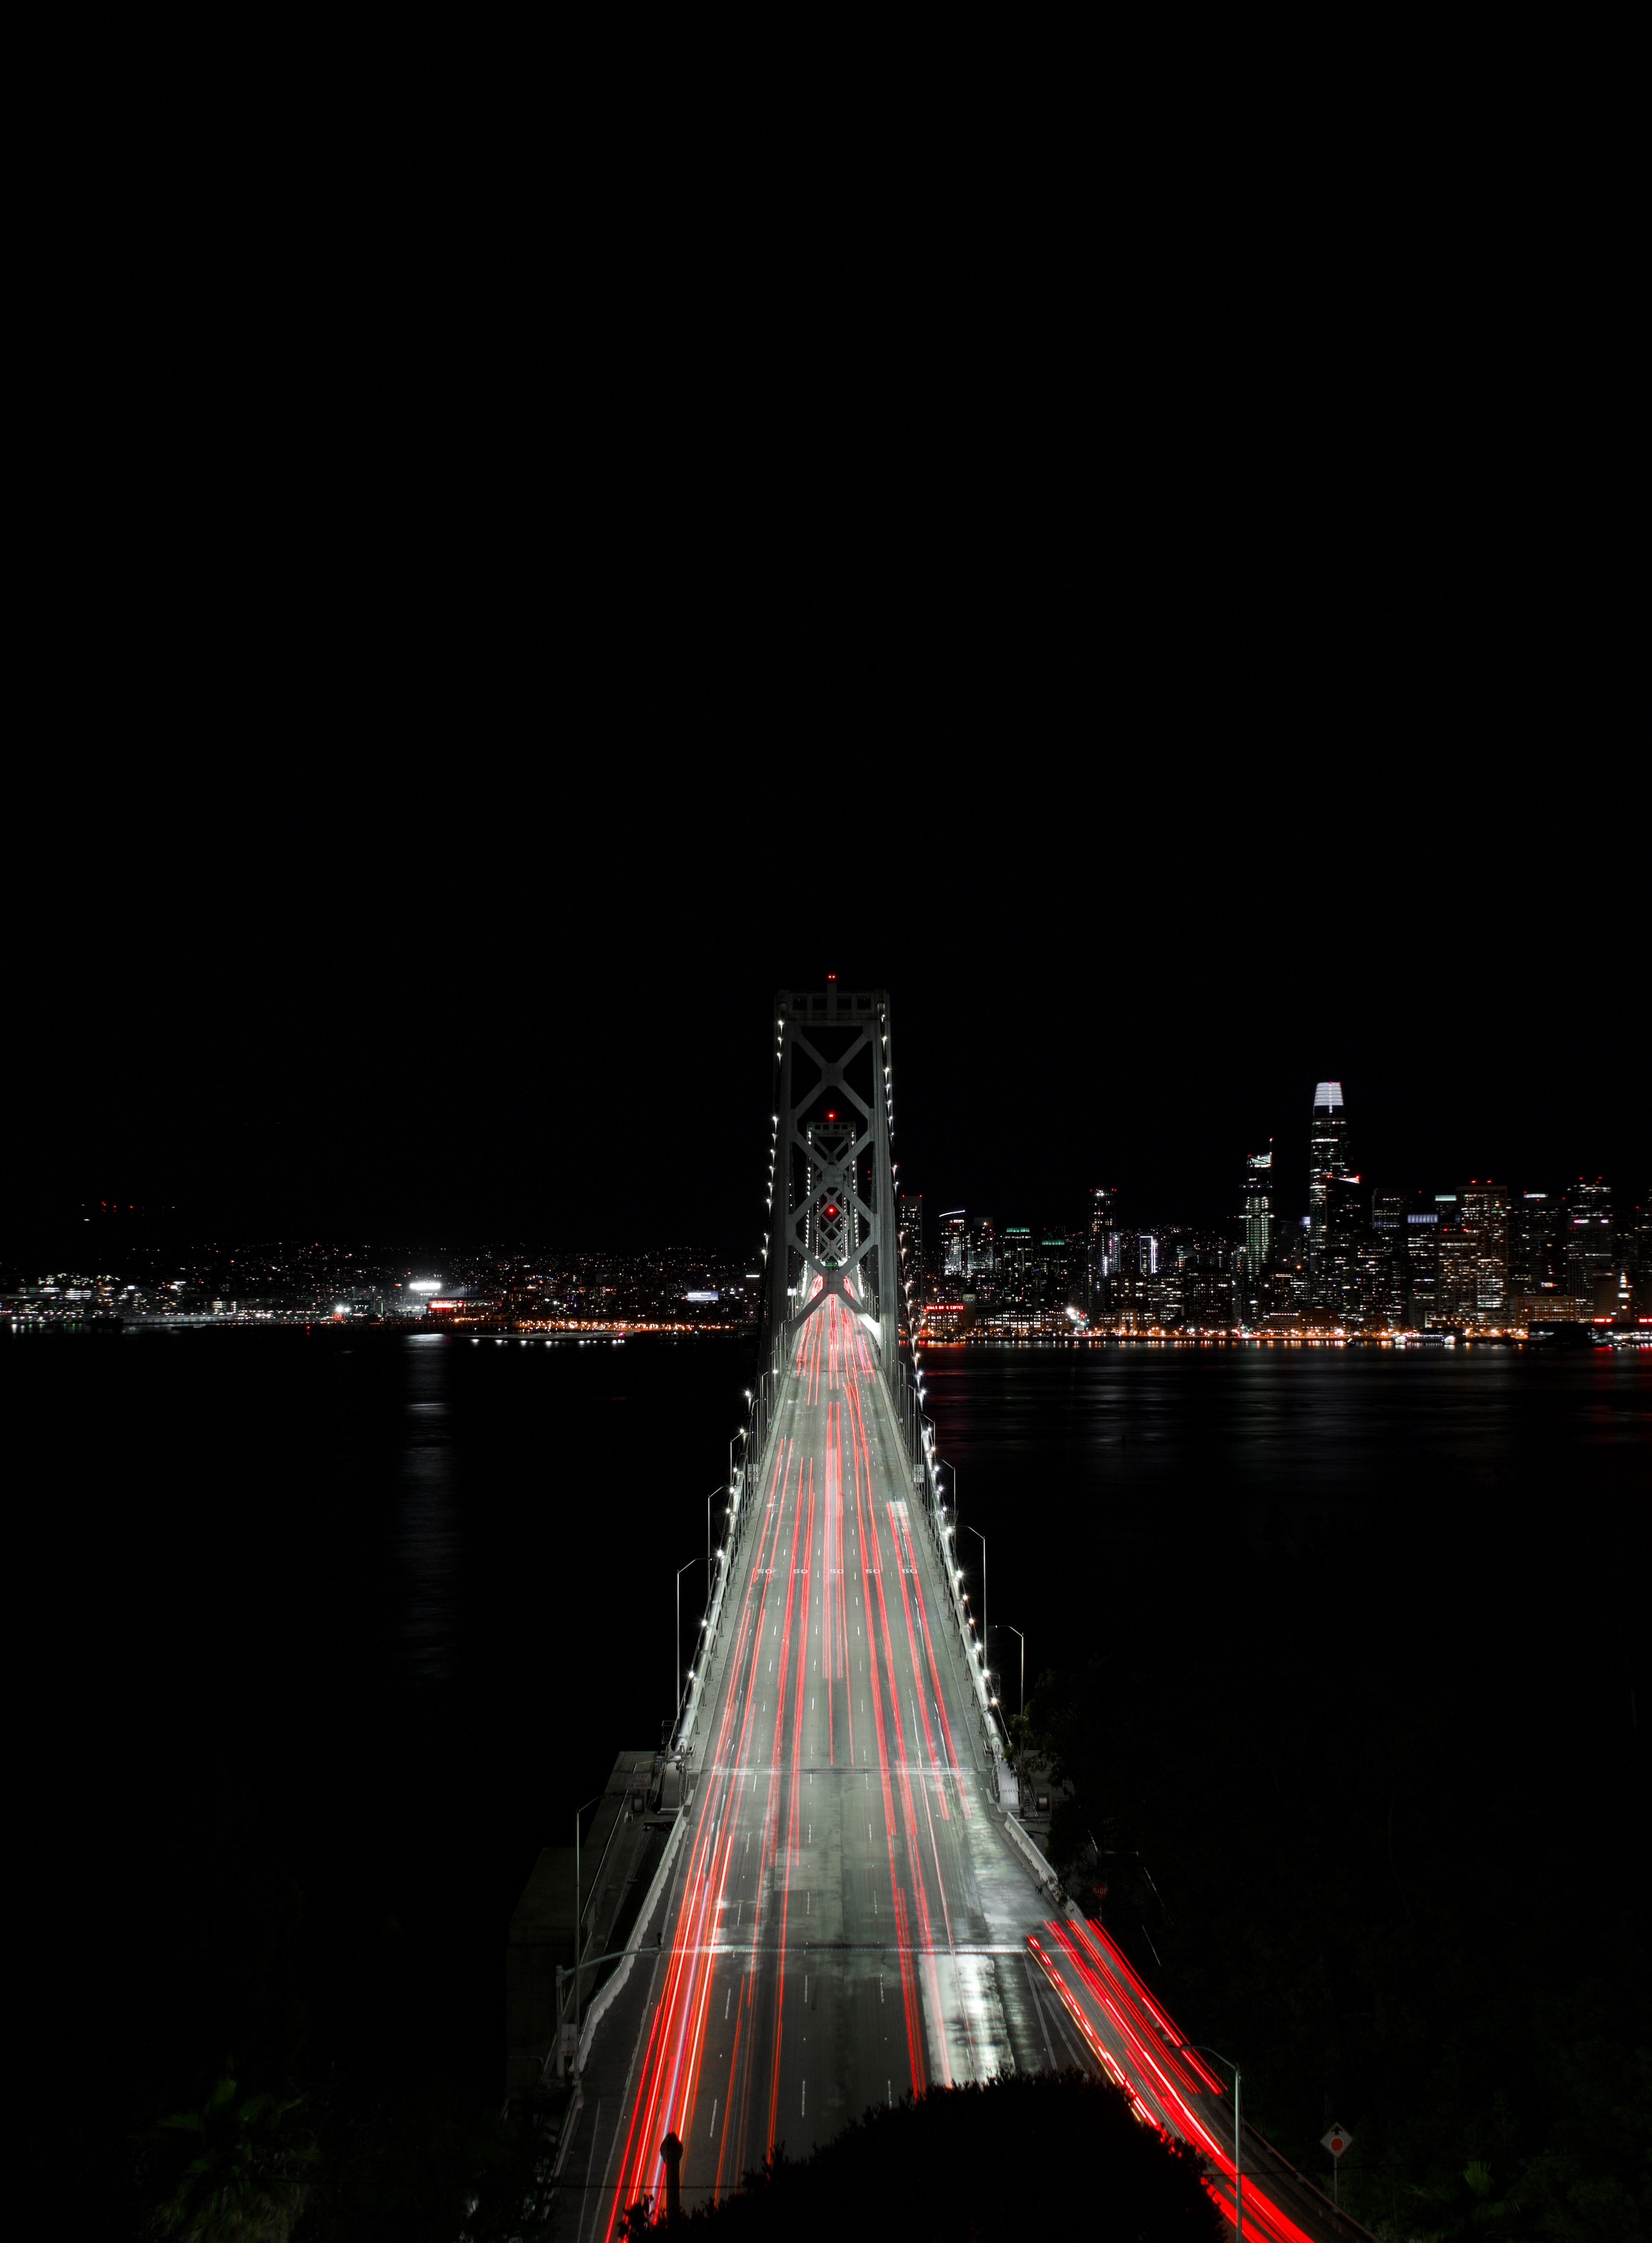 117470 free wallpaper 720x1520 for phone, download images Night, City, Lights, Dark, Bridge 720x1520 for mobile